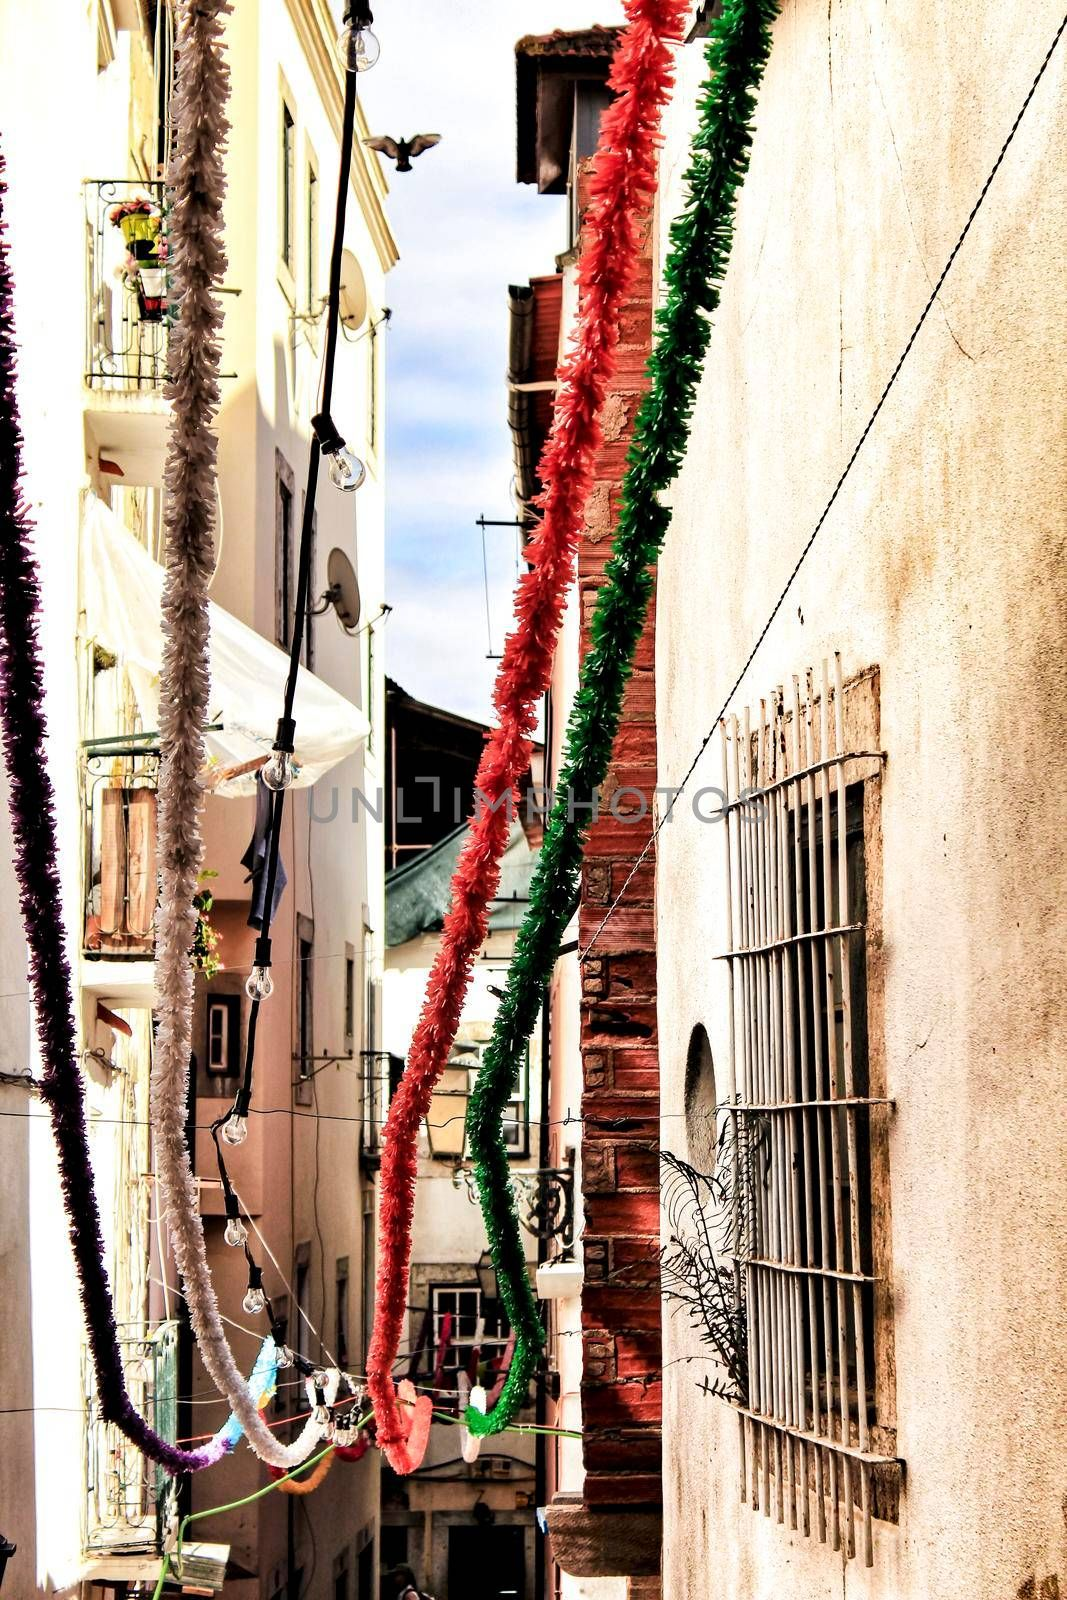 Streets adorned with garlands for the festivities of Saint Anthony in the Alfama neighborhood in Lisbon